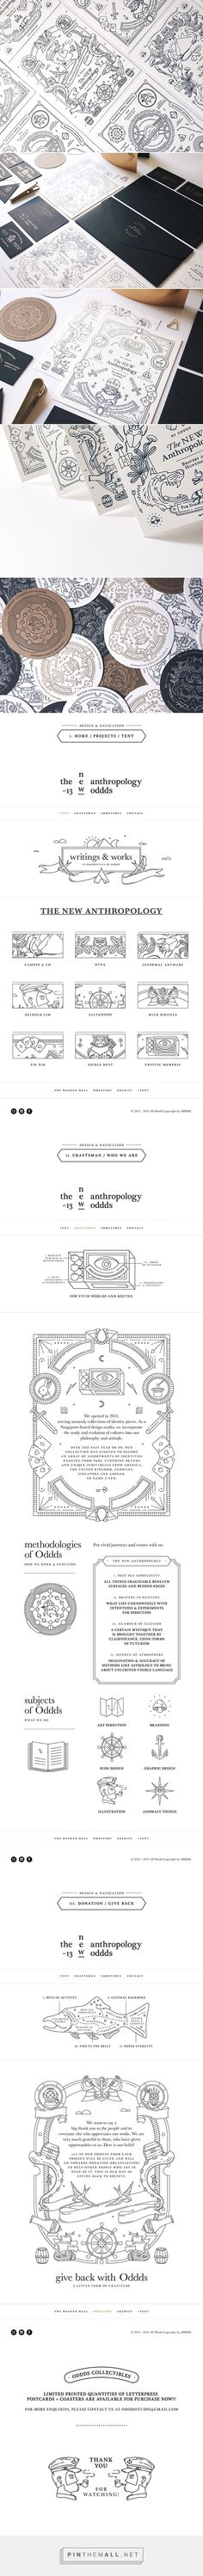 polygraphy design #infographic #booklet Polygraphy design